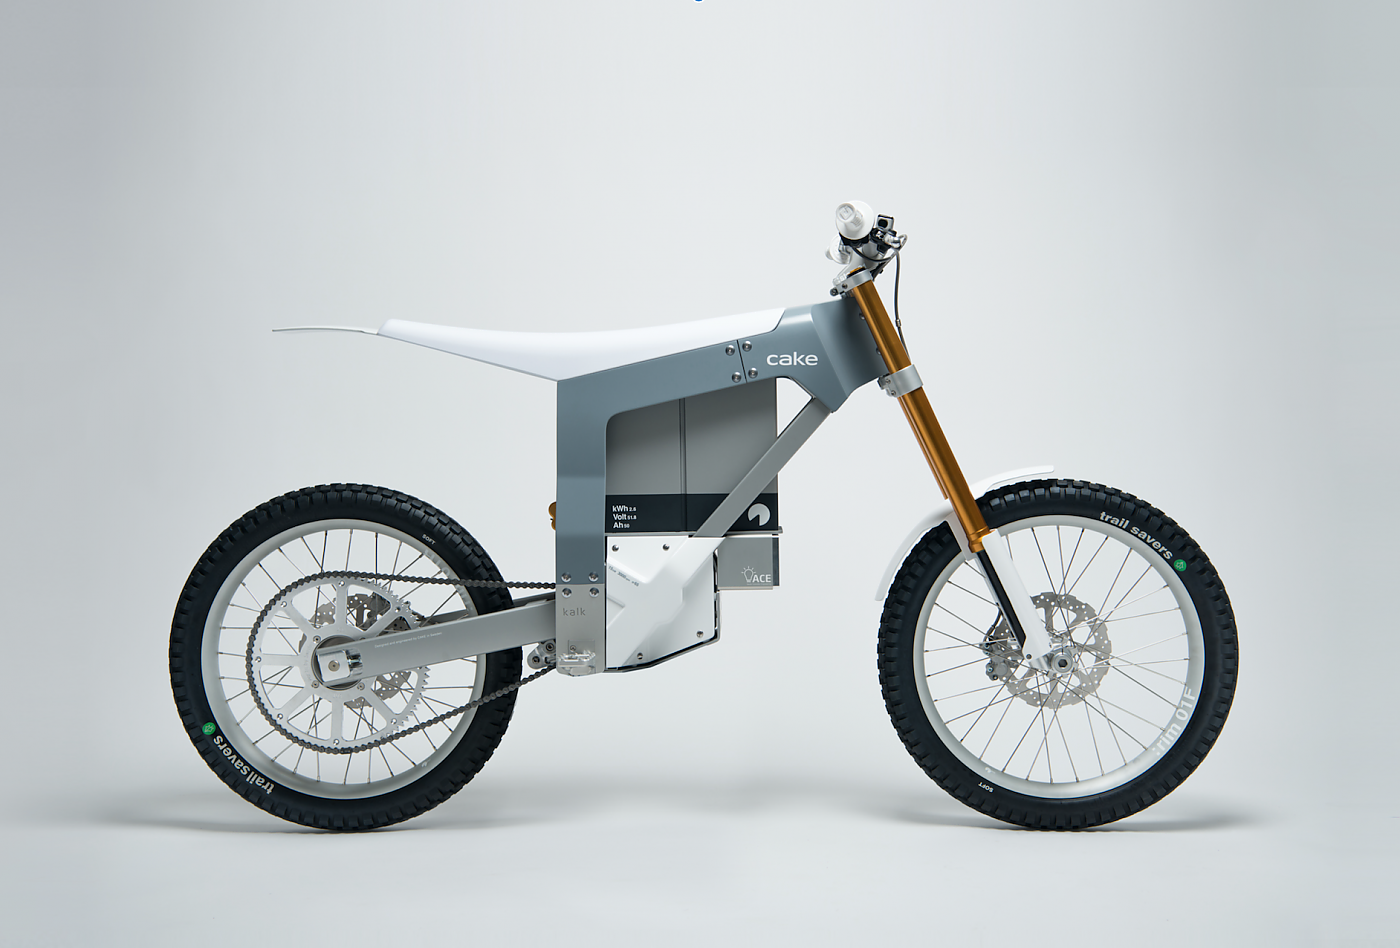 Poc S Founder Launches Electric Motorcycle At Or Sia Show